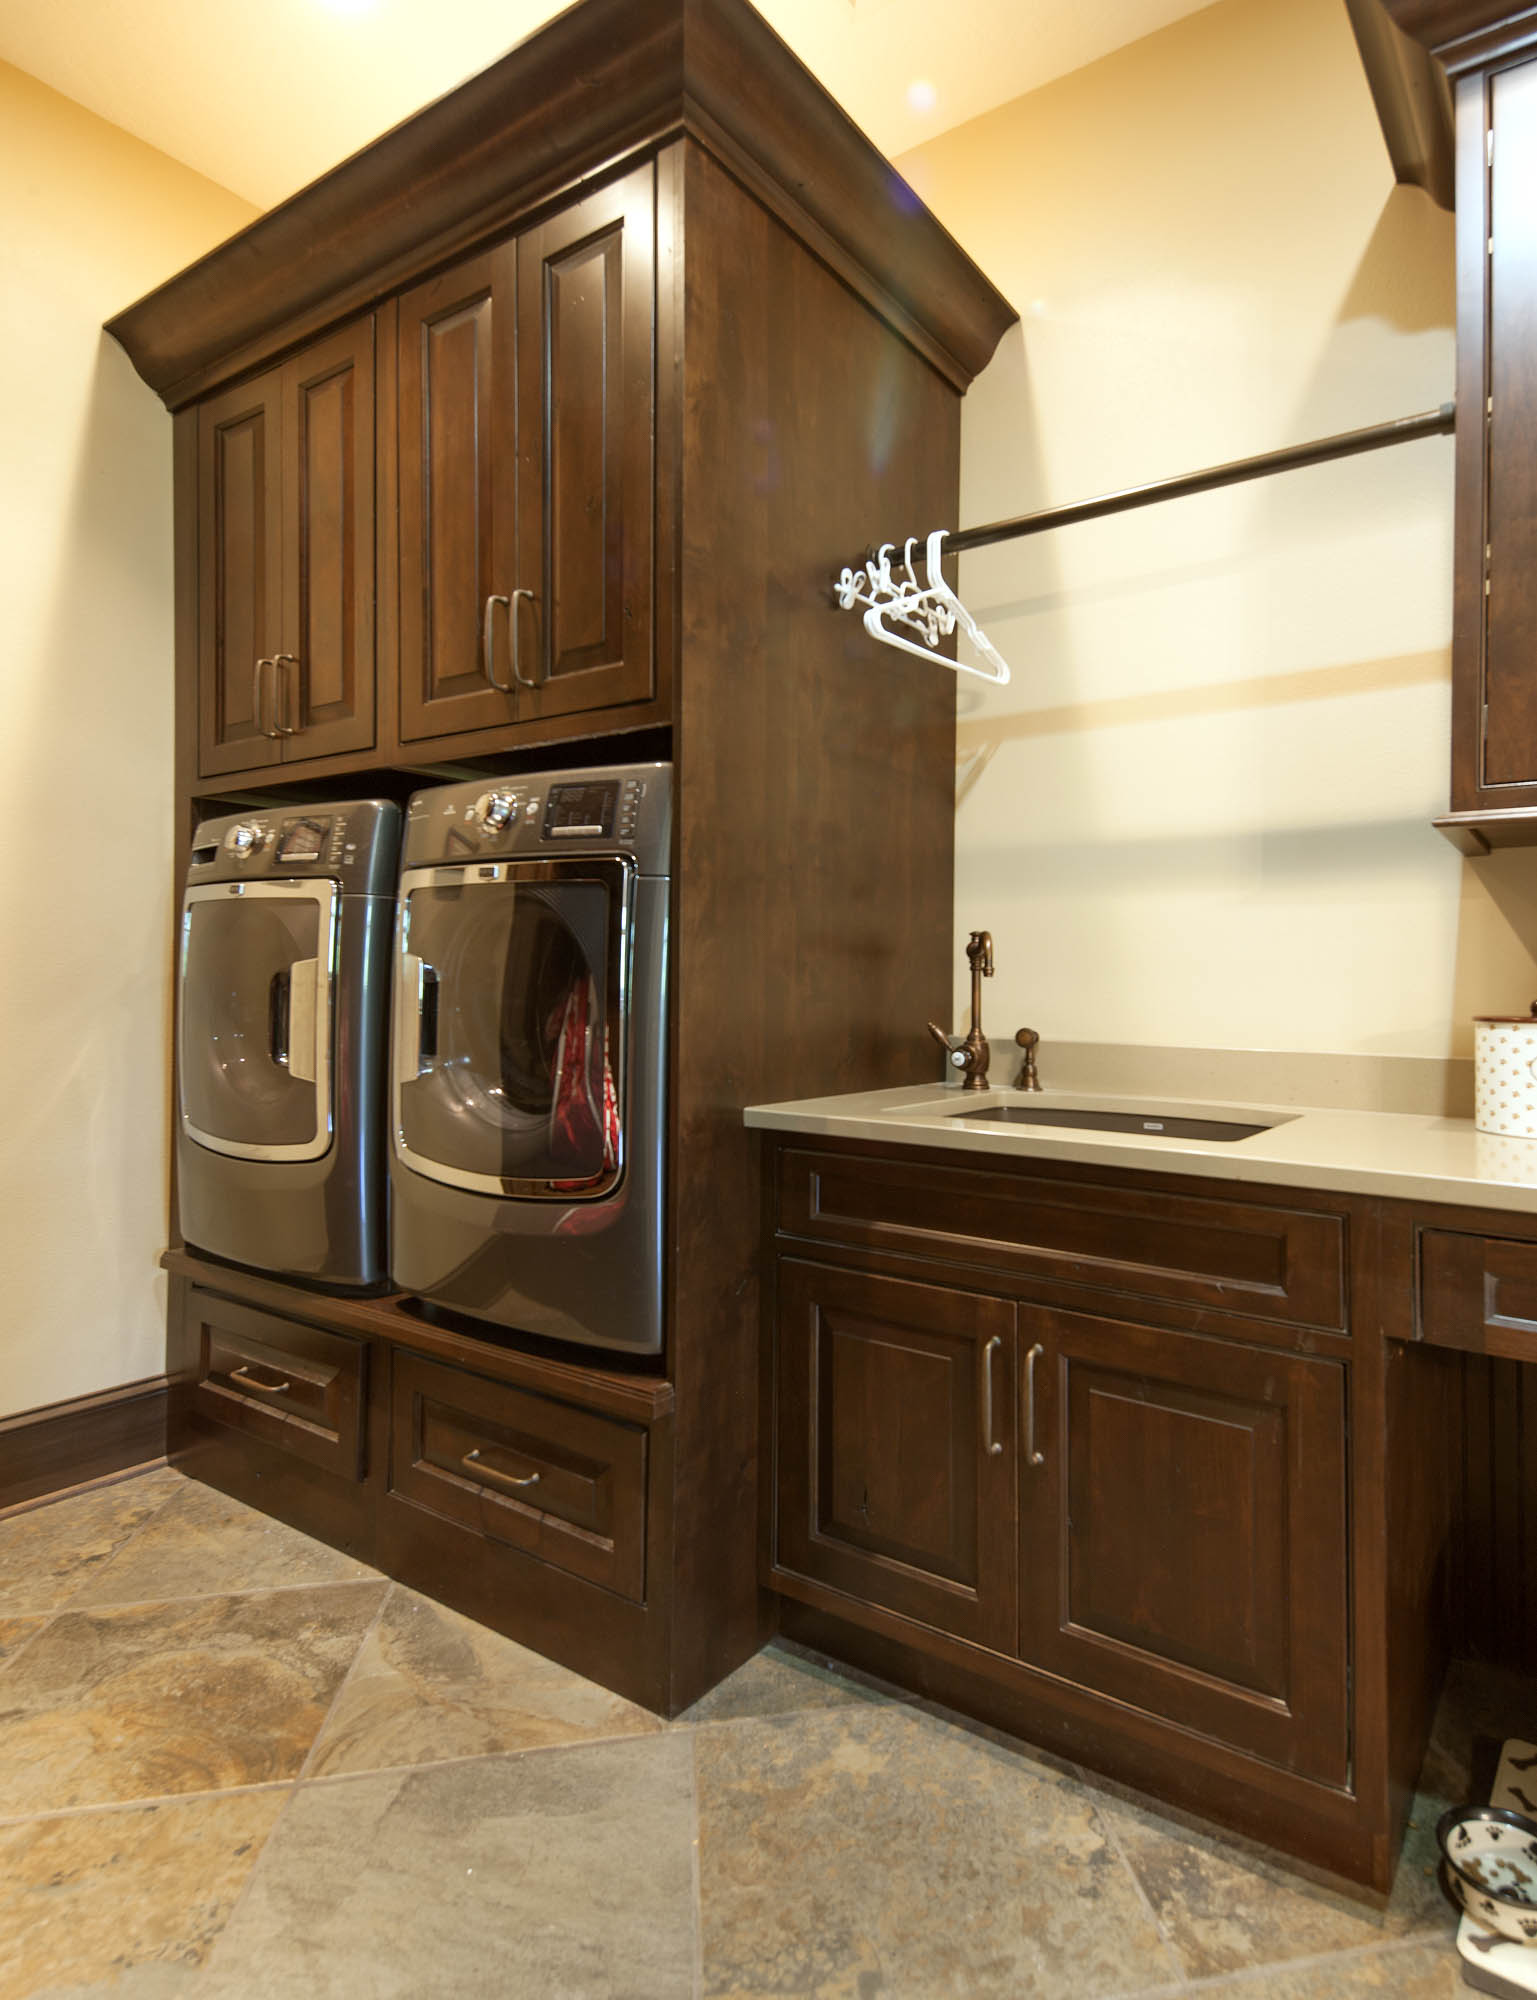 Stained laundry room cabinets in Distressed Coffee